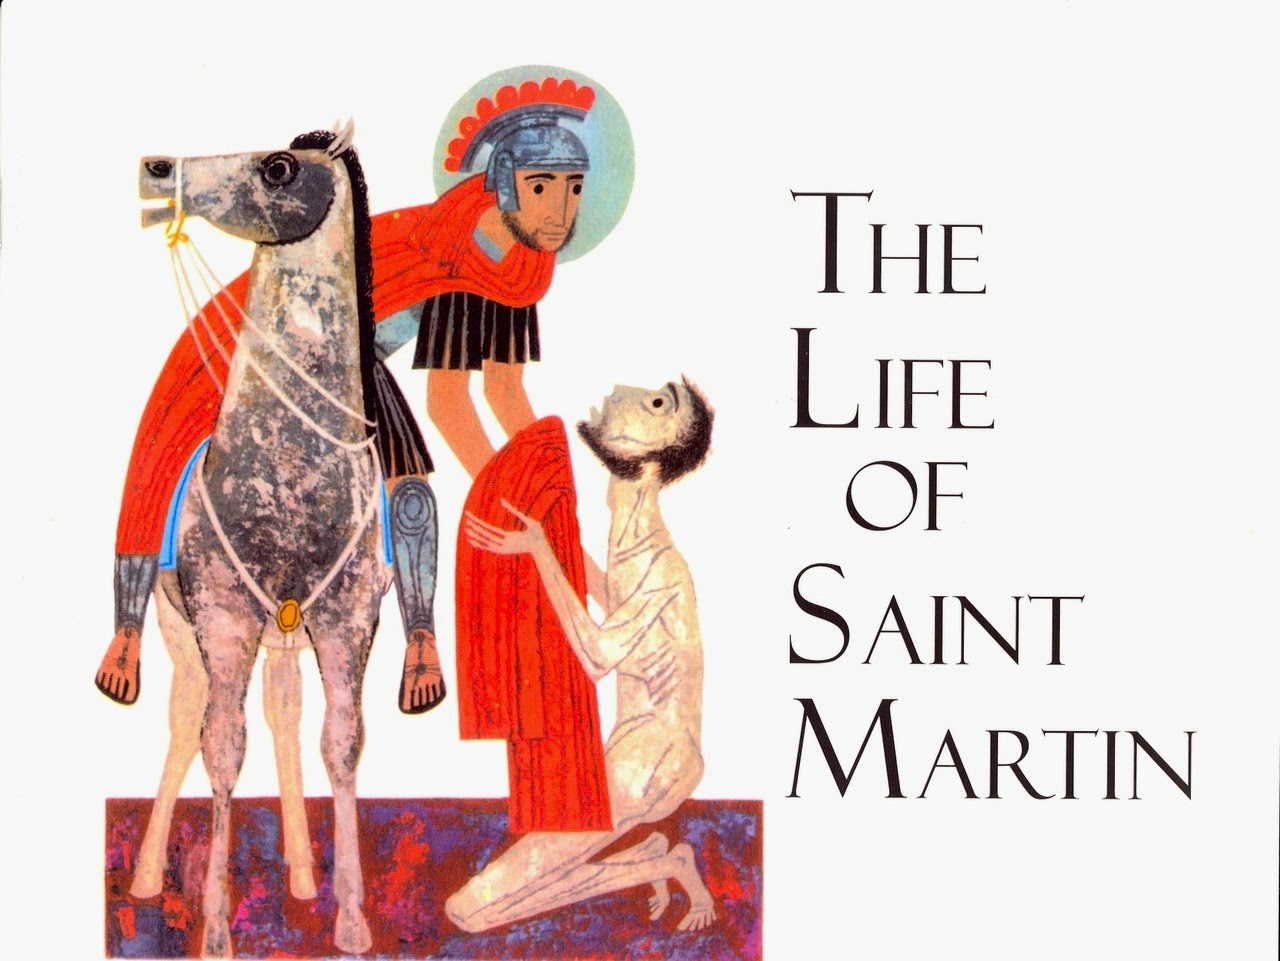 an analysis of the life of martin of tours Jimmy santiago baca - poet - jimmy santiago baca was born in santa fe, new mexico, in 1952  martin and meditations on the south valley,.